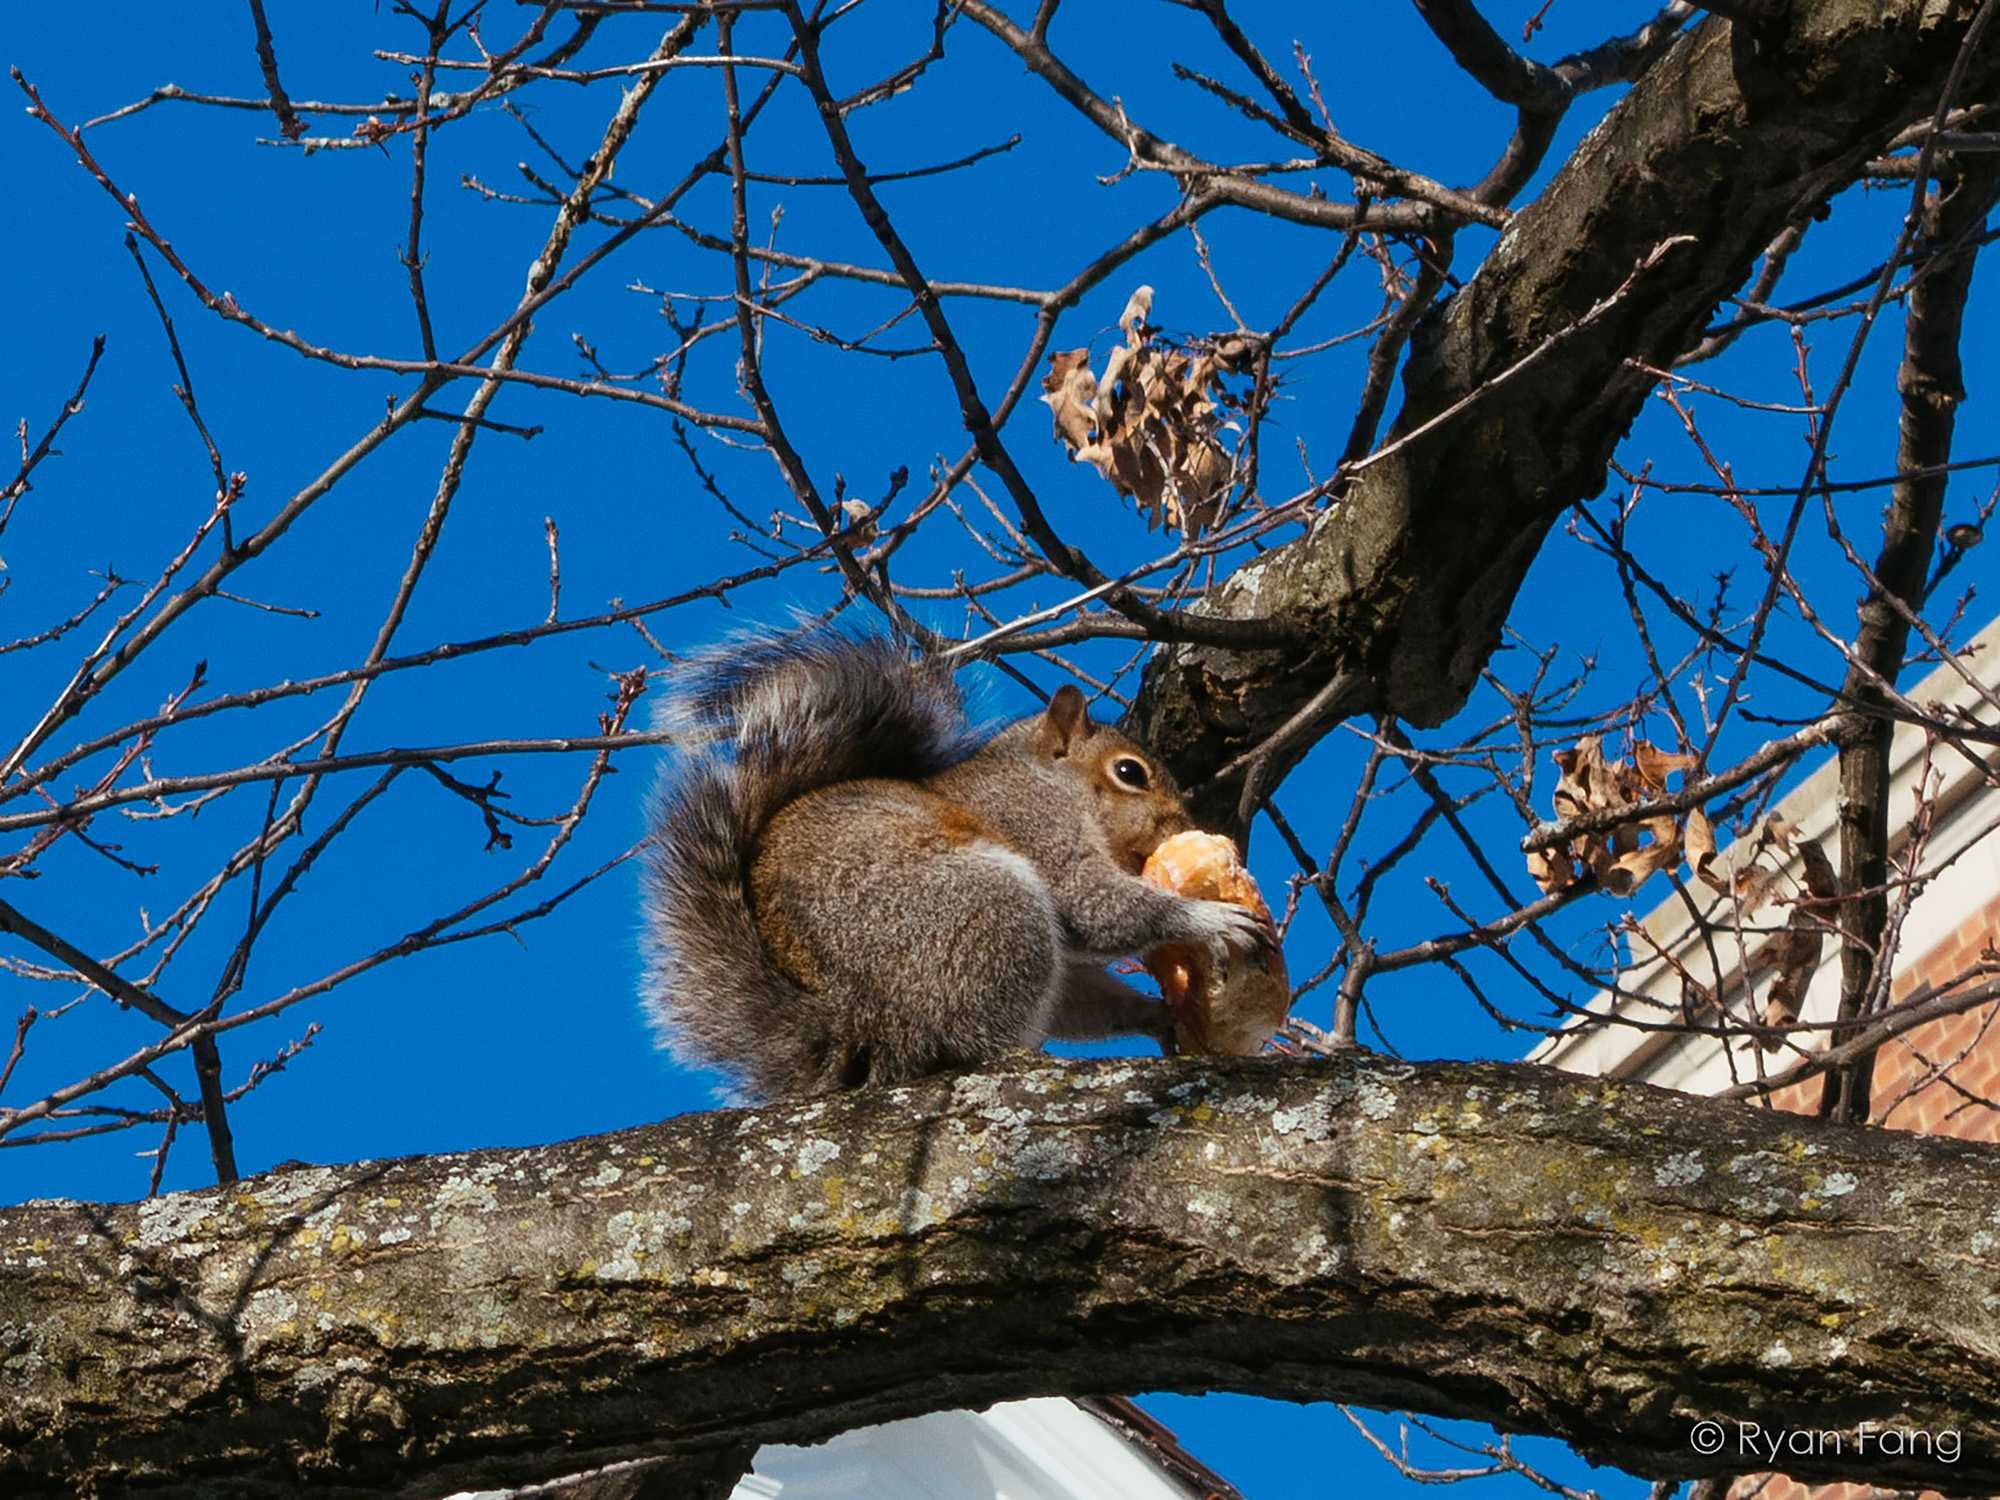 A squirrel eats donut near the Anniversary Plaza on Friday, Mar 6 2015.